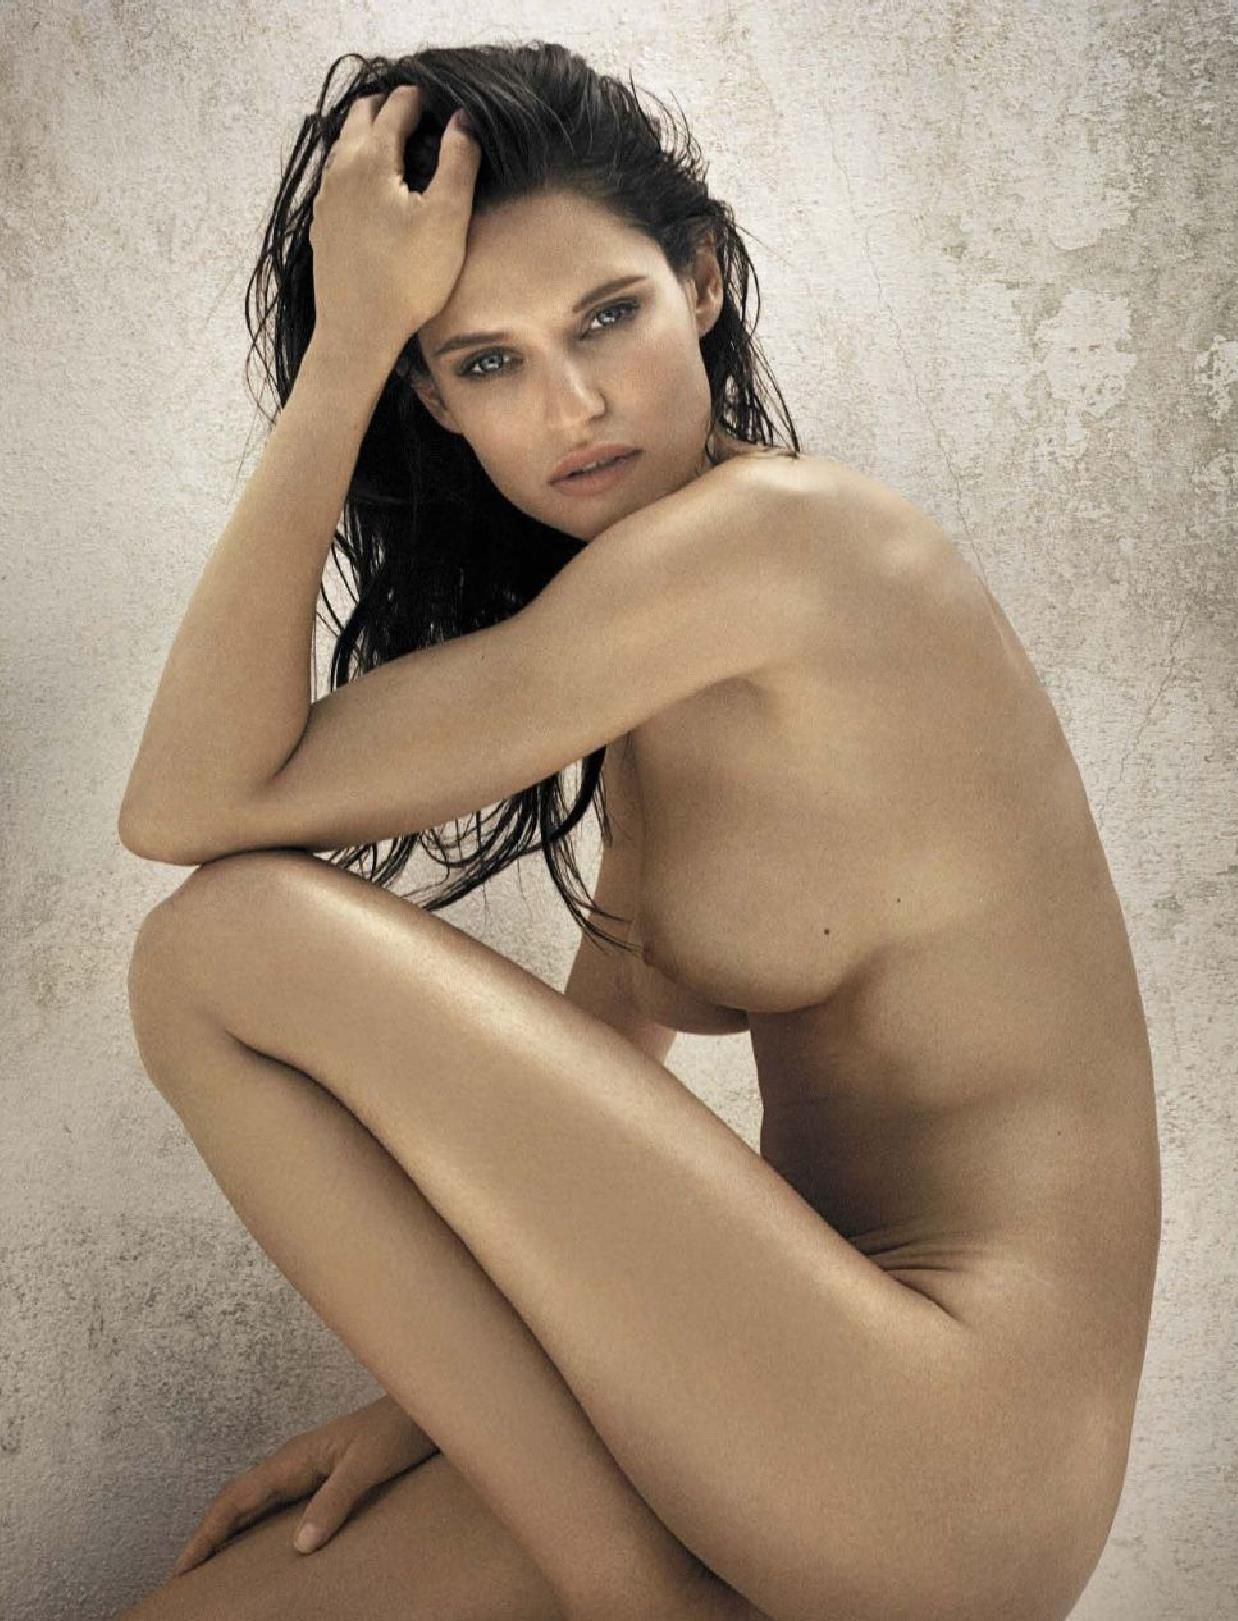 pinnelson perez on topløs | pinterest | bianca balti, gq and nude